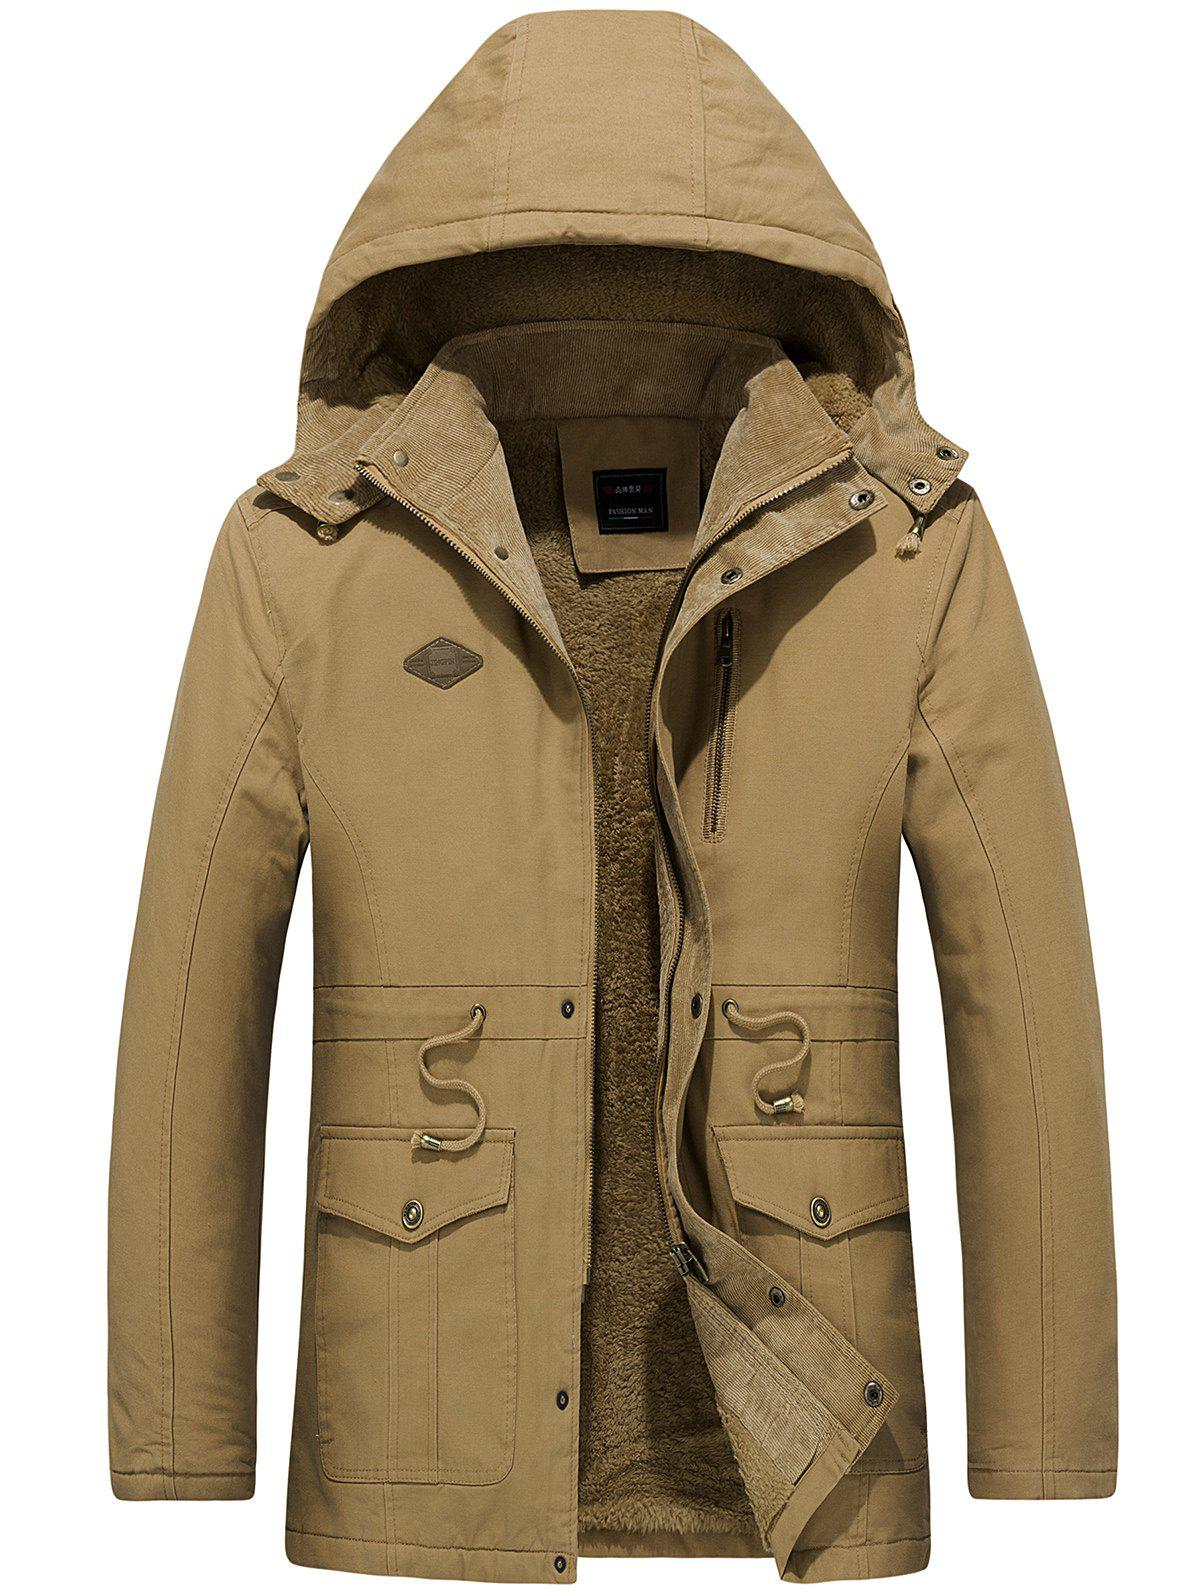 Draw String Waist Detachable Hooded Outdoor Jacket - CAMEL BROWN S